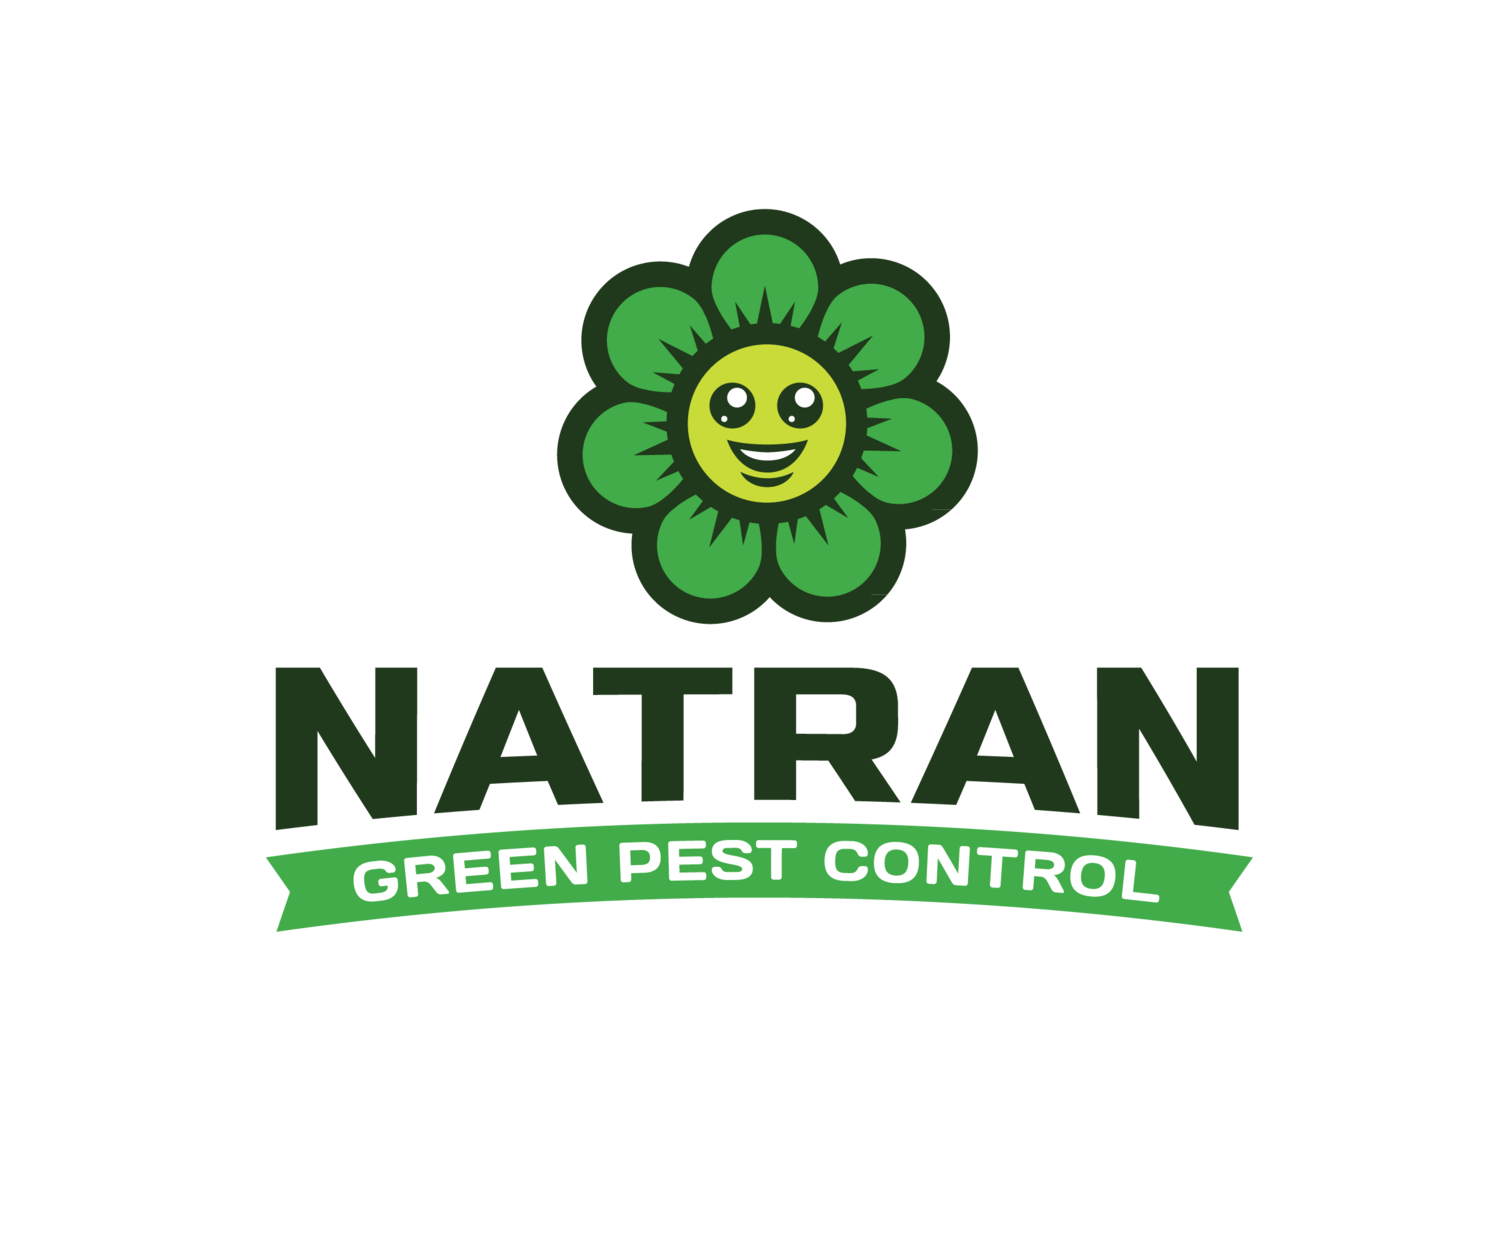 Natran Green Pest Control - Houston & Austin, Texas